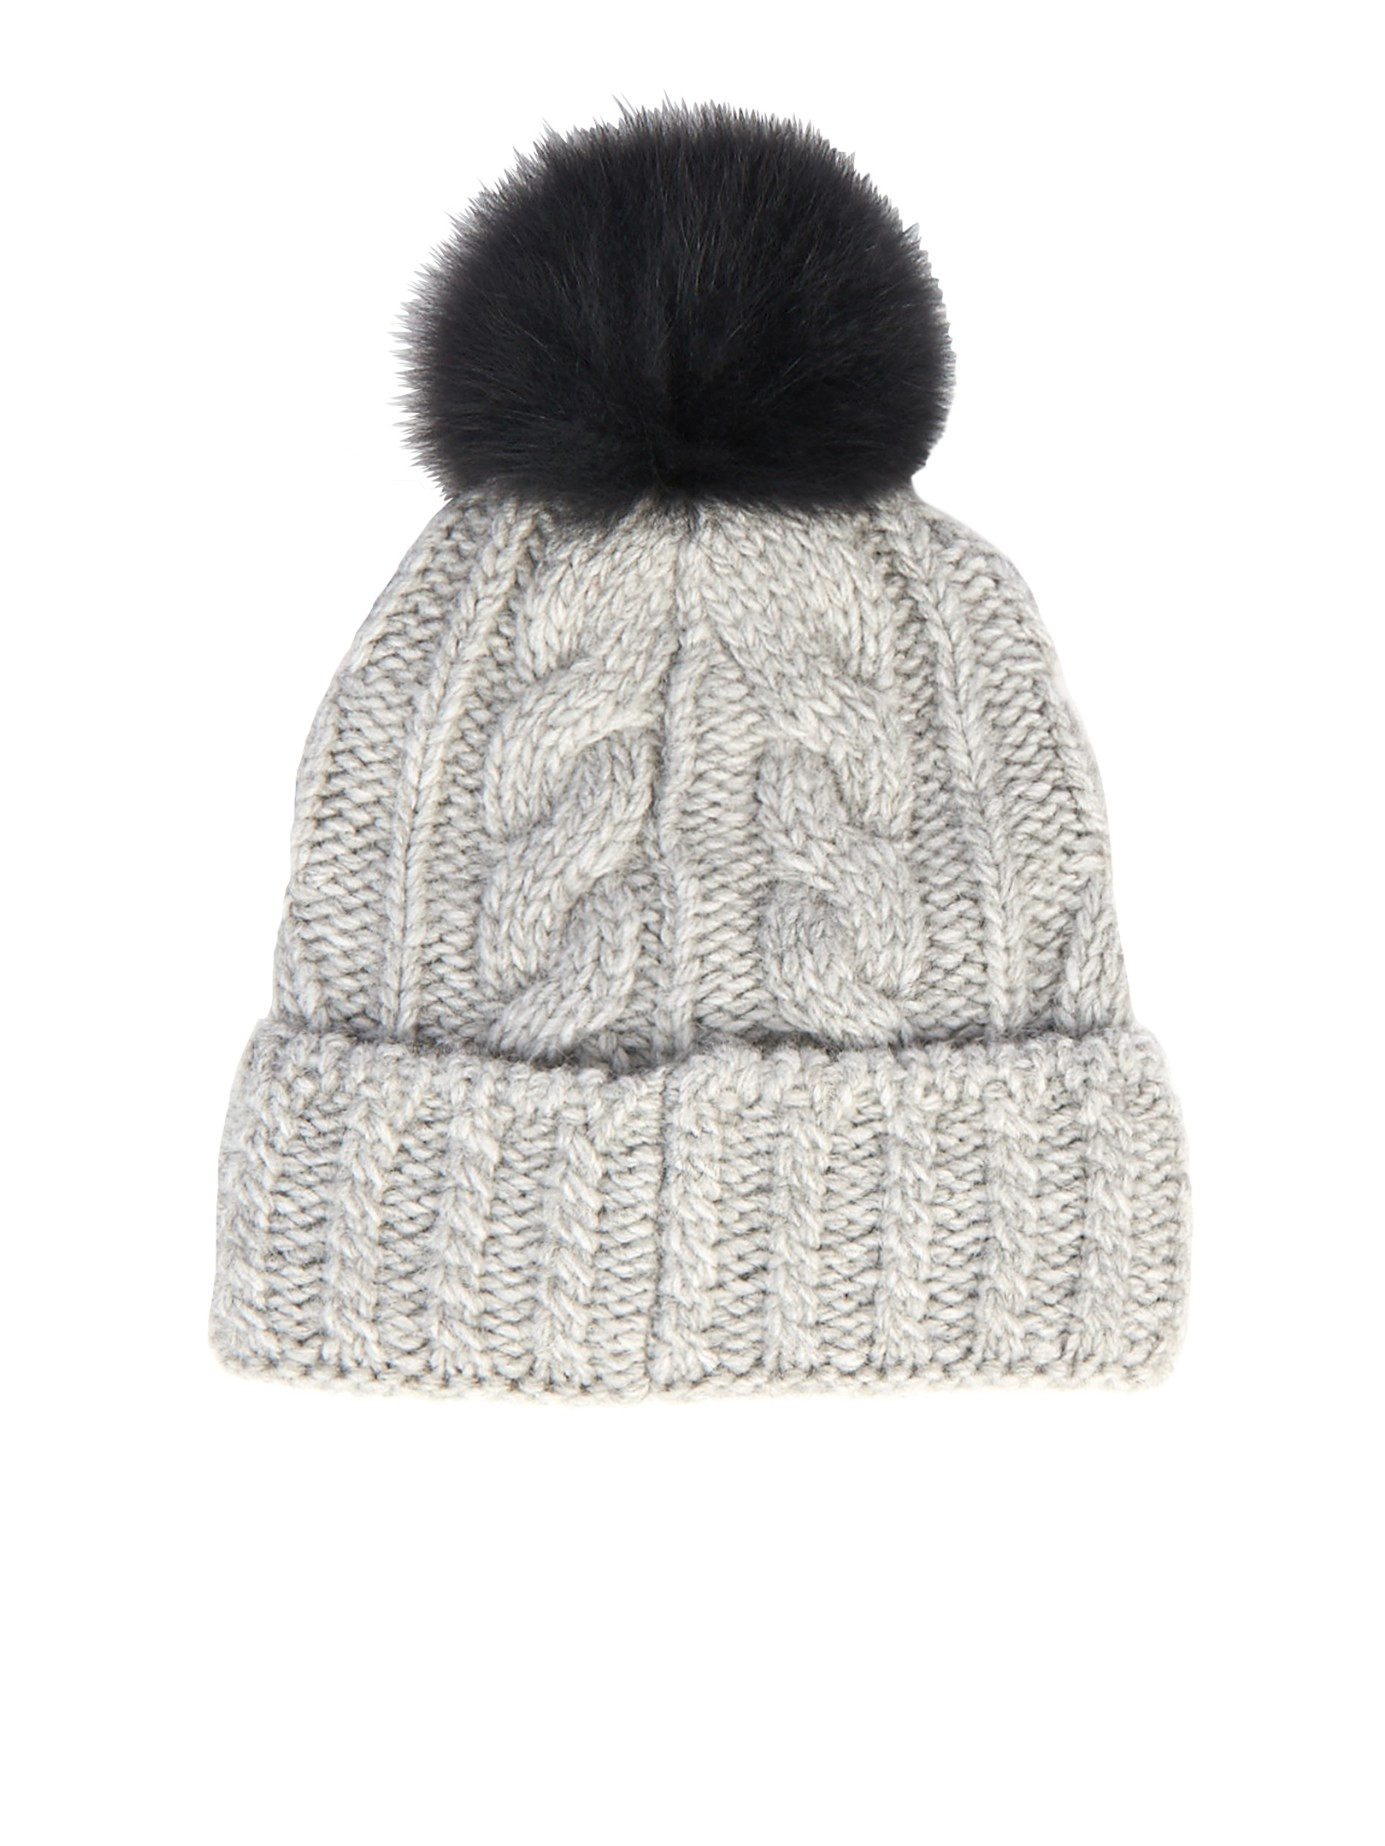 Lyst - Moncler Grenoble Cable Knit Pompom Beanie in Gray 3fe74c97cd3e